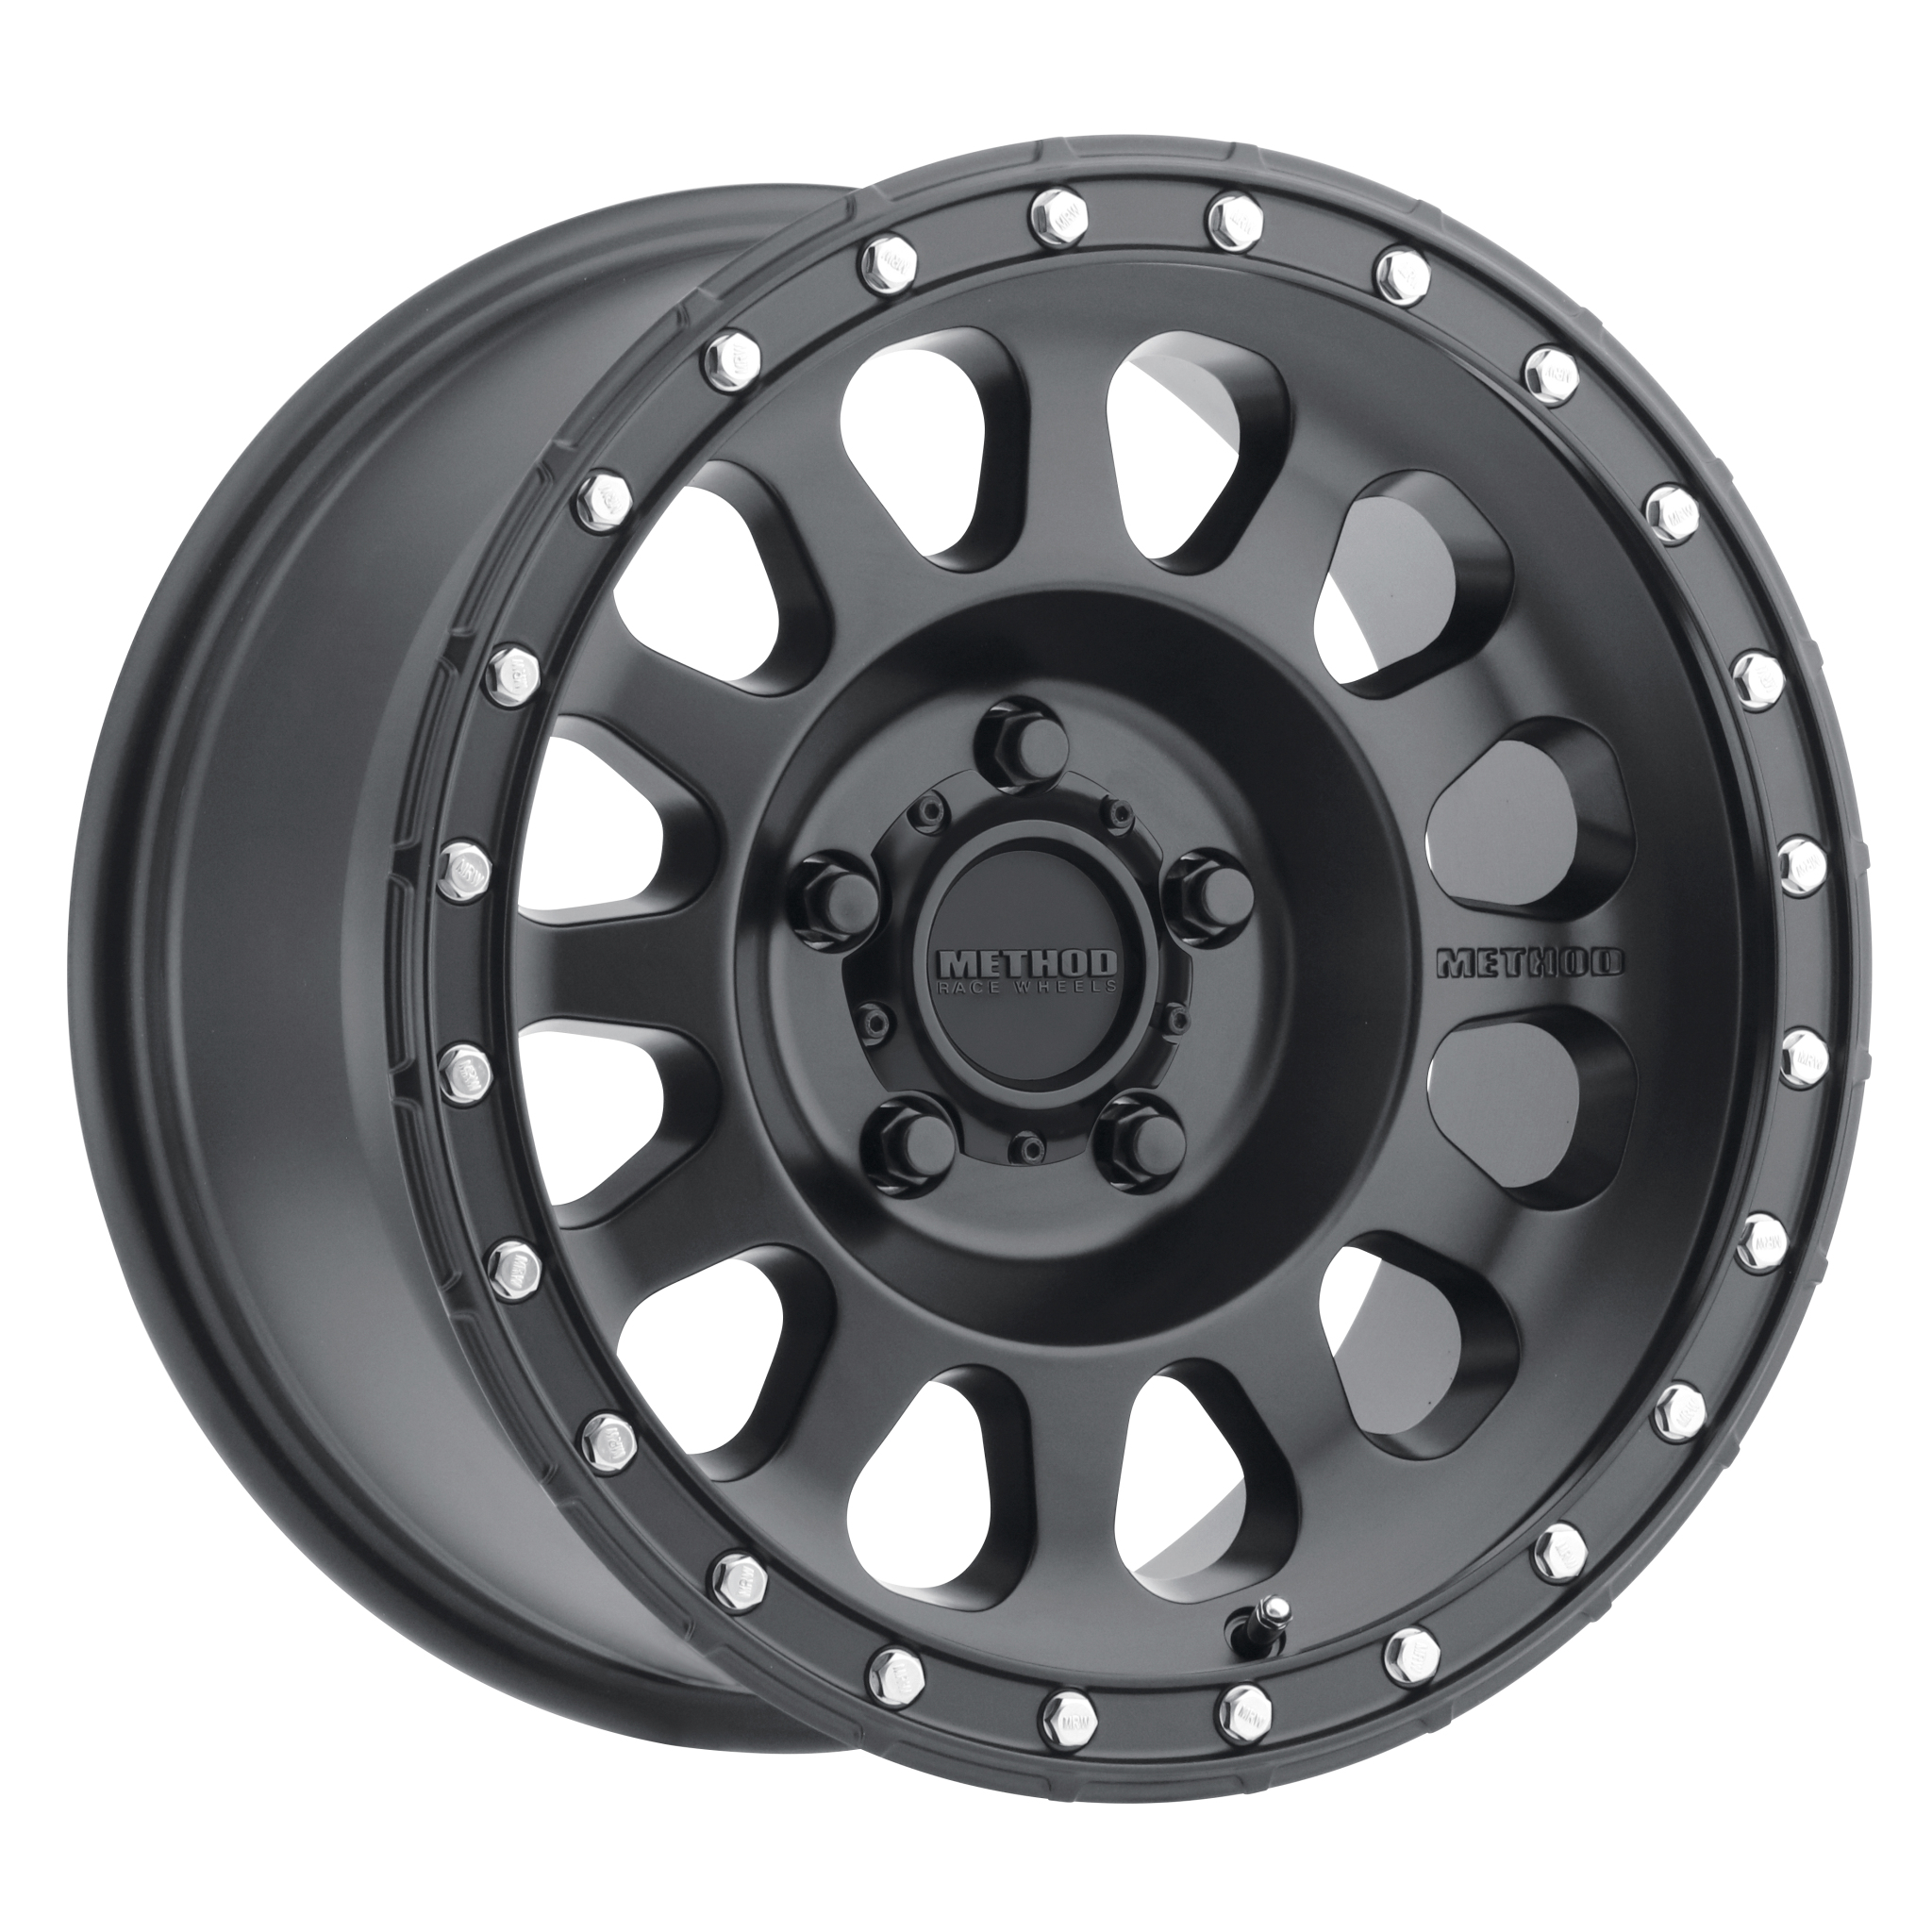 Method 315, 18x9, +18mm Offset, 5x150, 110.5mm Centerbore, Matte Black